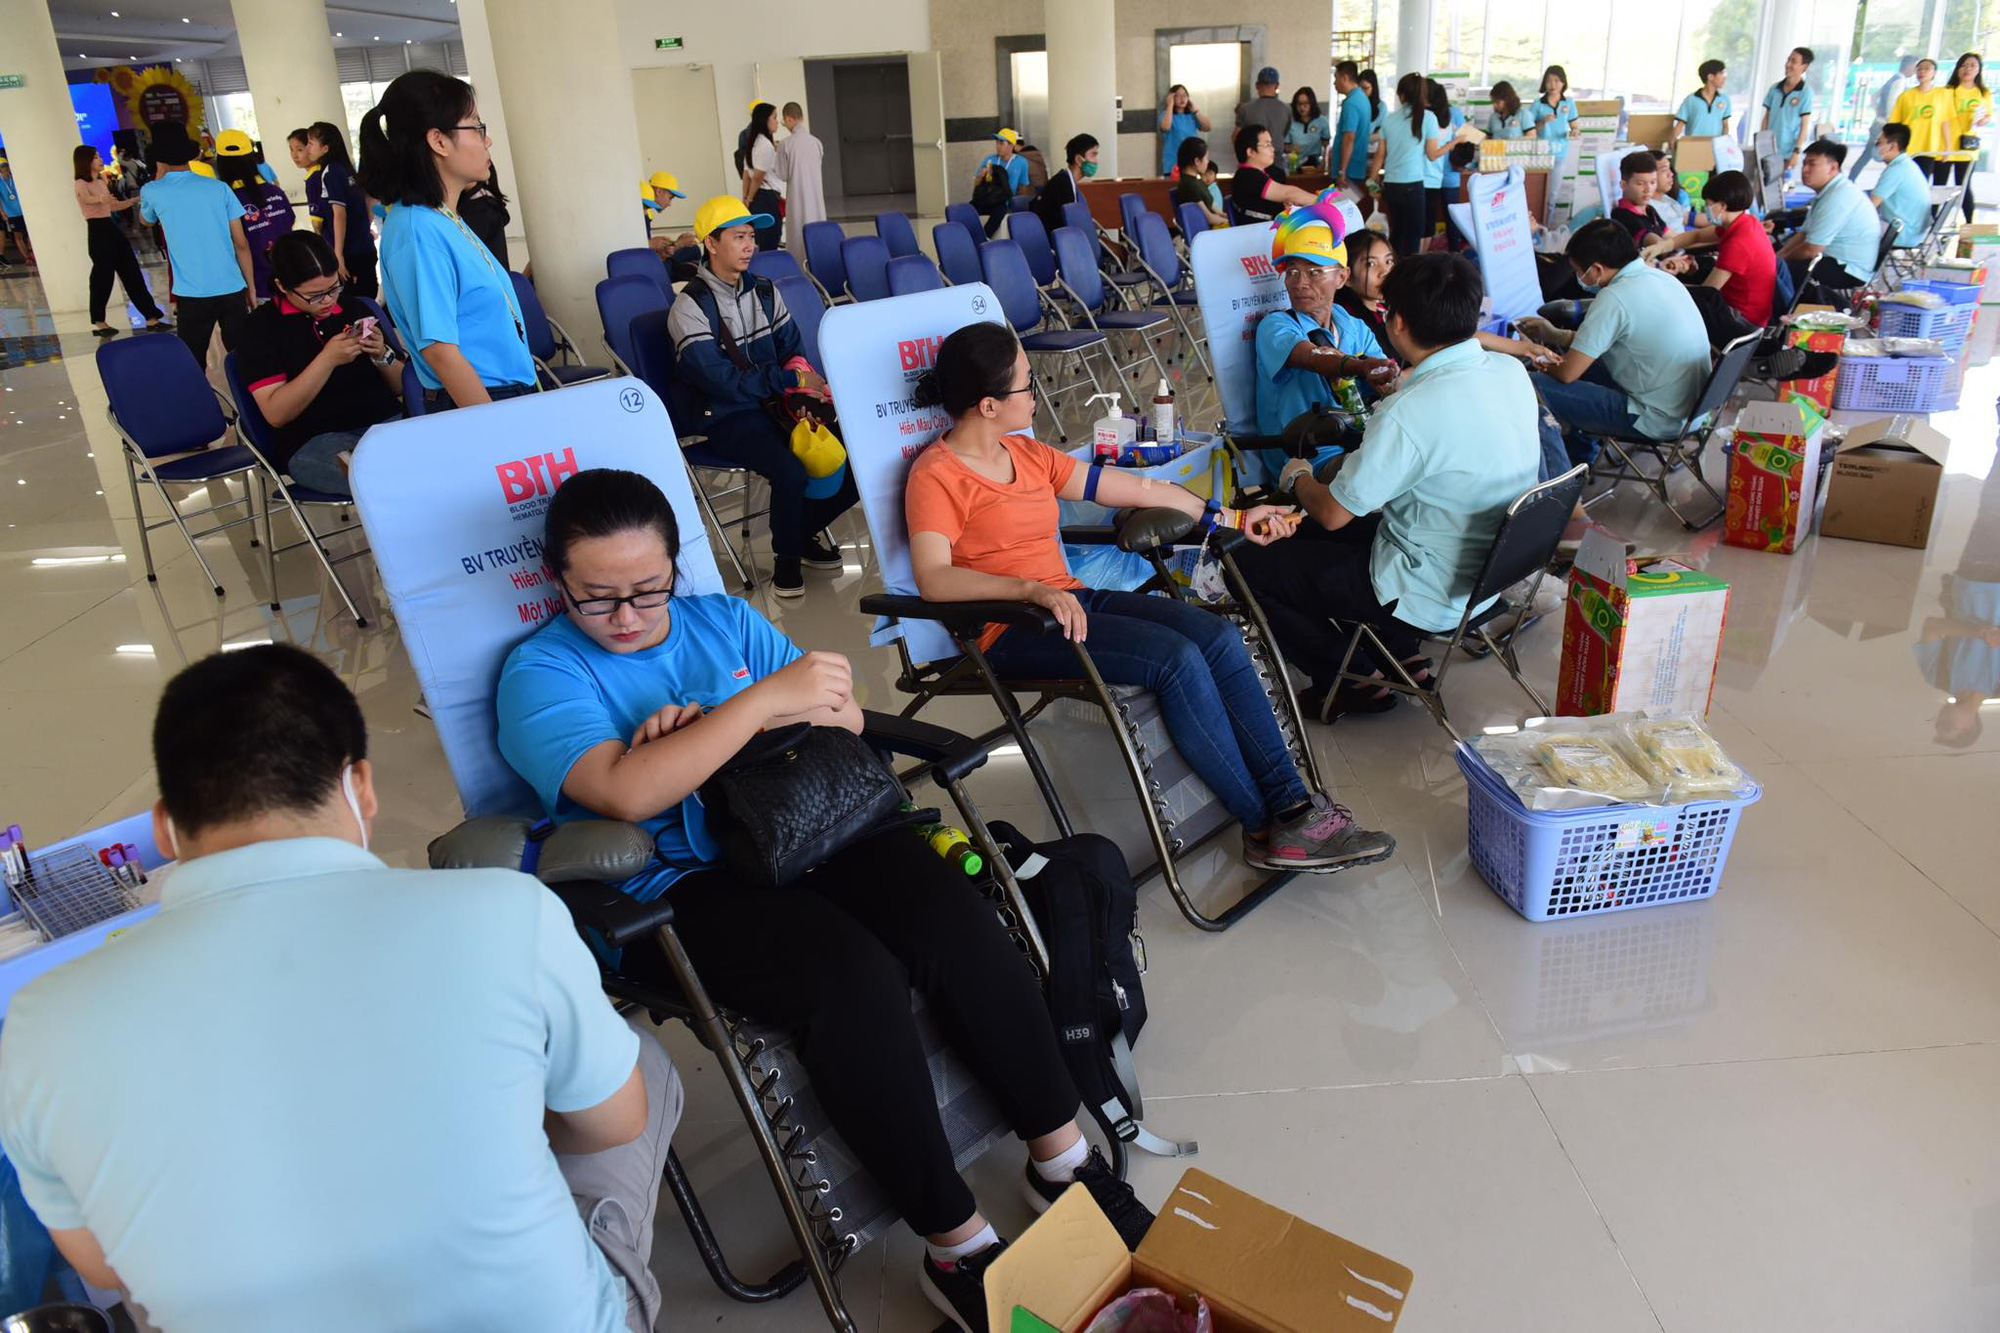 A blood drive takes place at the festival. Photo: Quang Dinh / Tuoi Tre